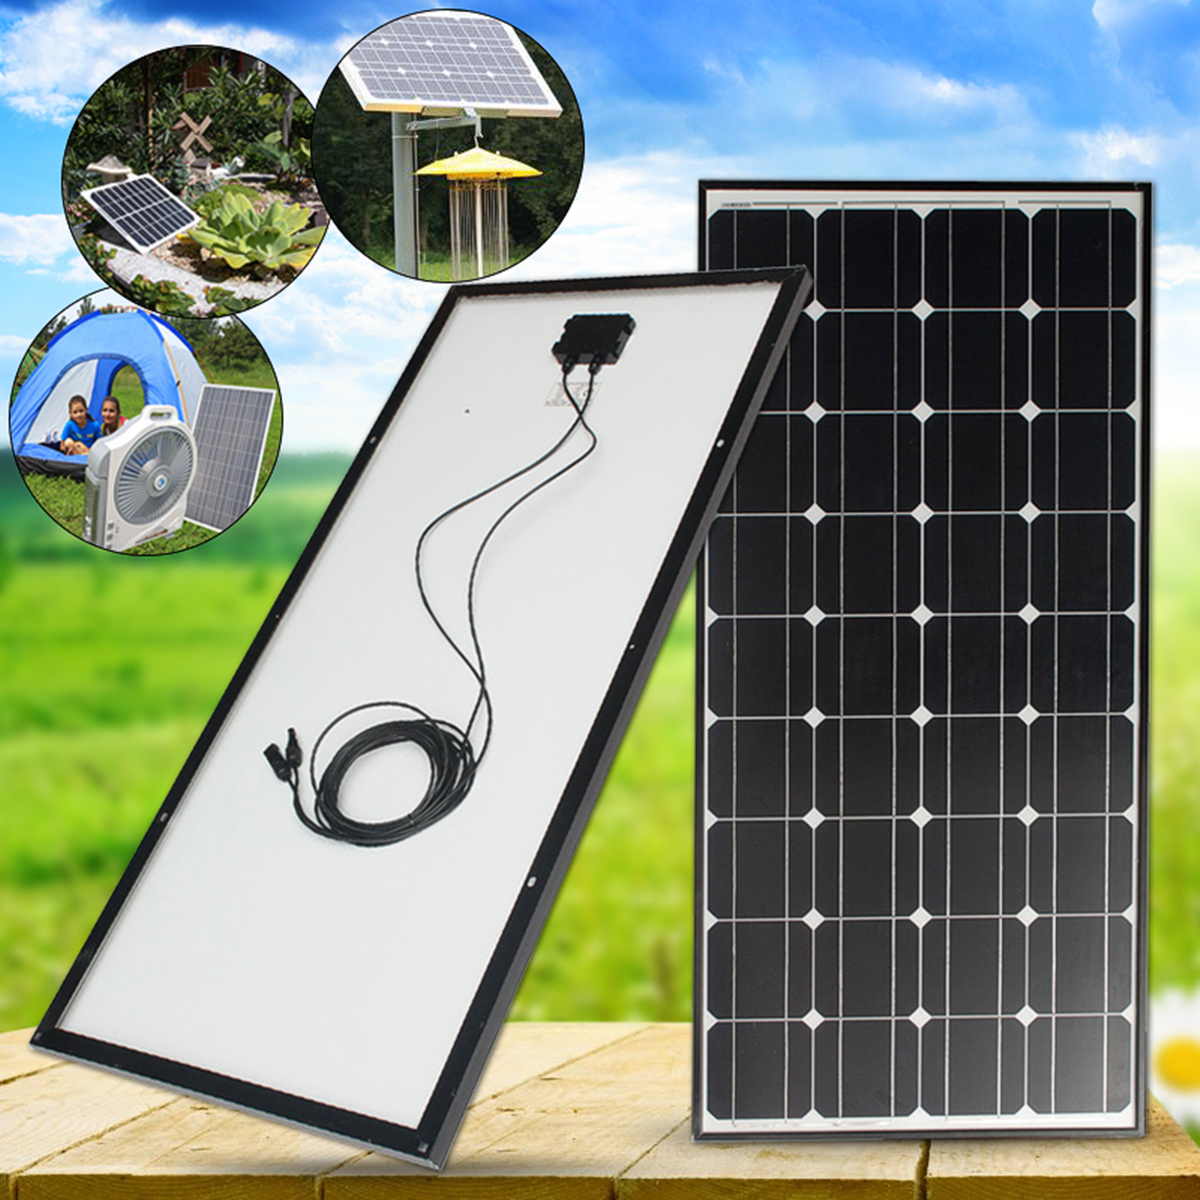 LEORY 100W Solar Panel 18V 100W Solar Charger For Car Battery 12V Battery Charger Monocrystalline Cells Module Kit